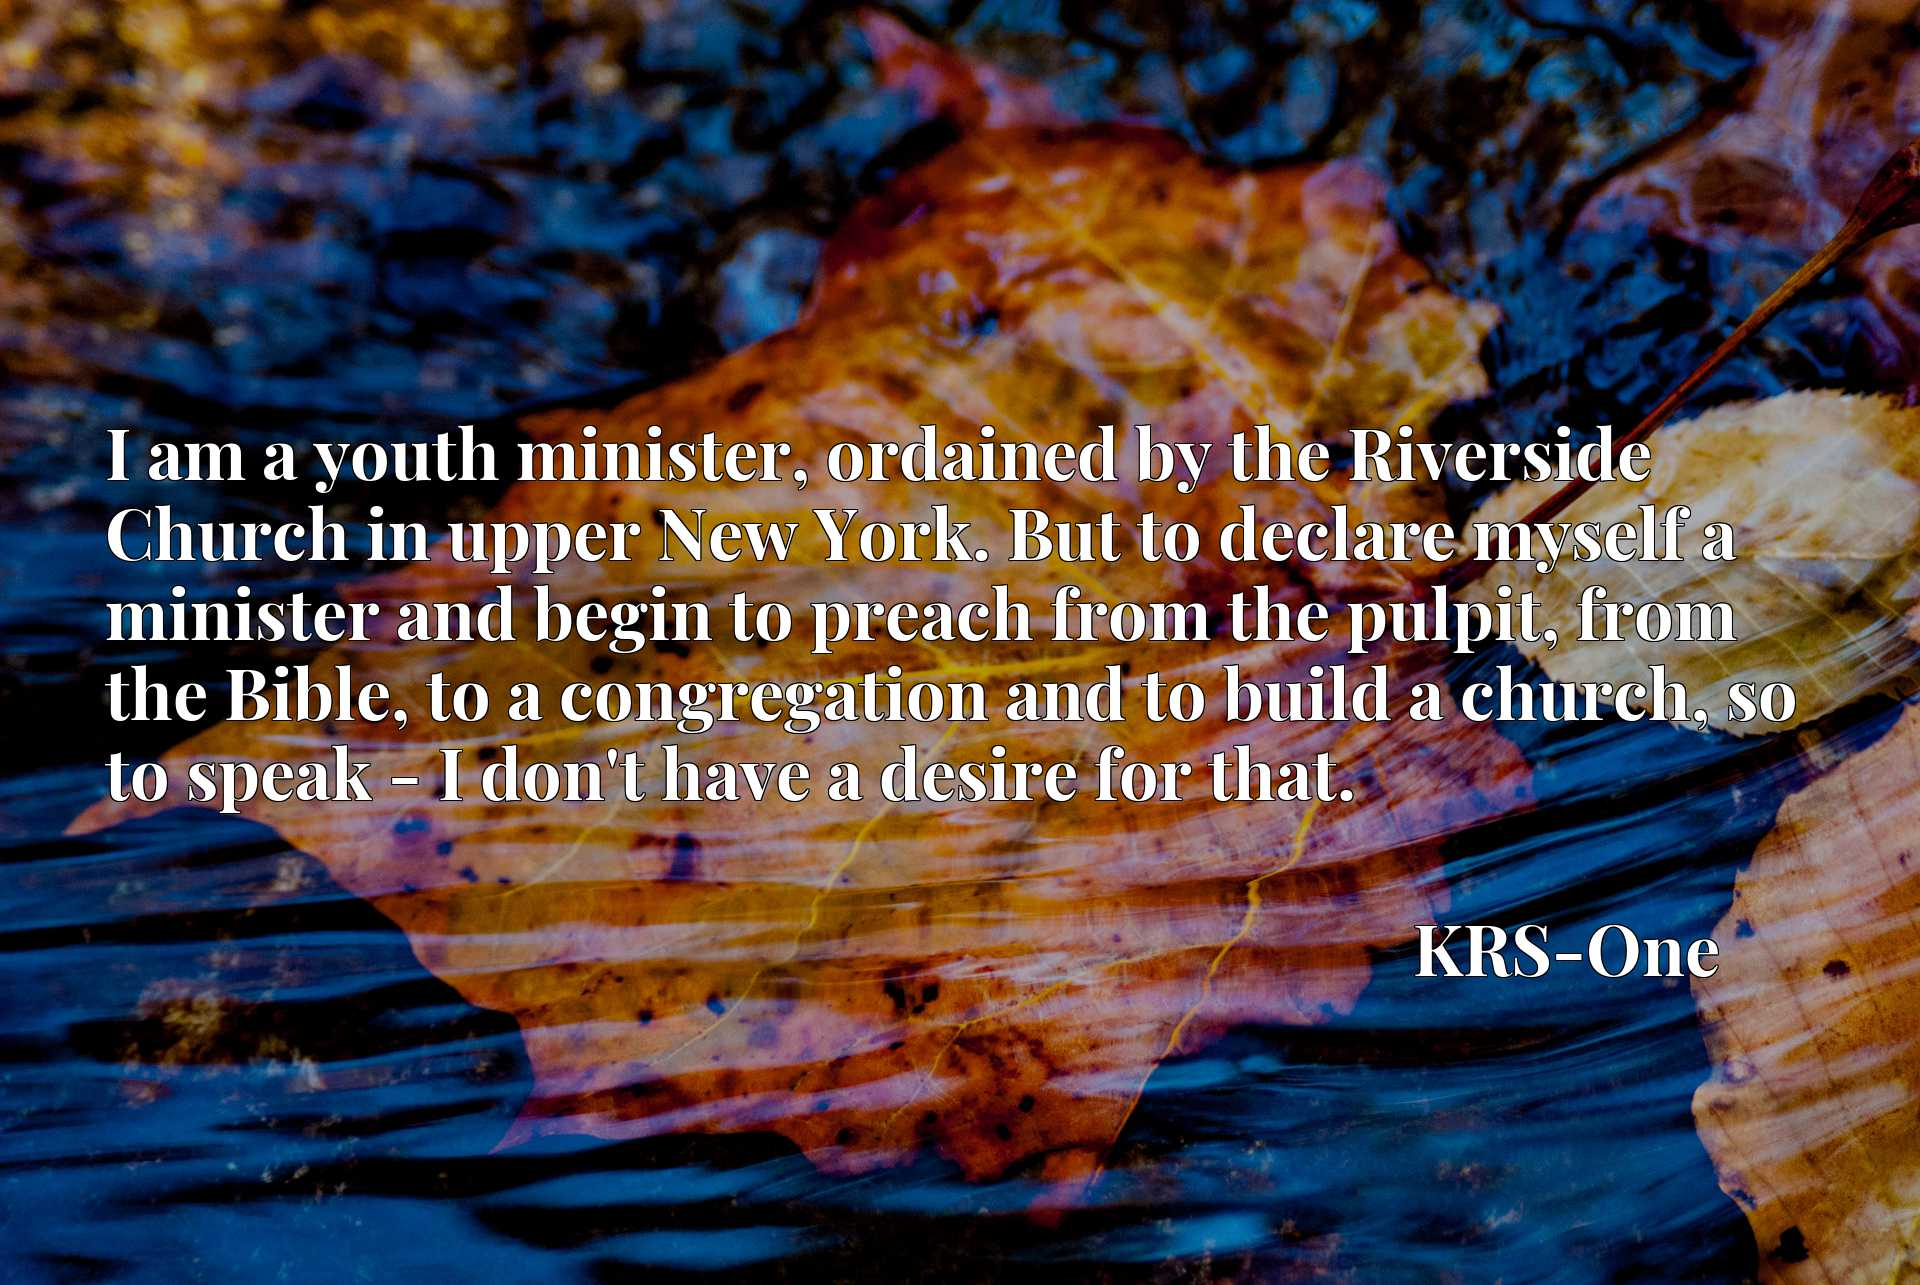 I am a youth minister, ordained by the Riverside Church in upper New York. But to declare myself a minister and begin to preach from the pulpit, from the Bible, to a congregation and to build a church, so to speak - I don't have a desire for that.